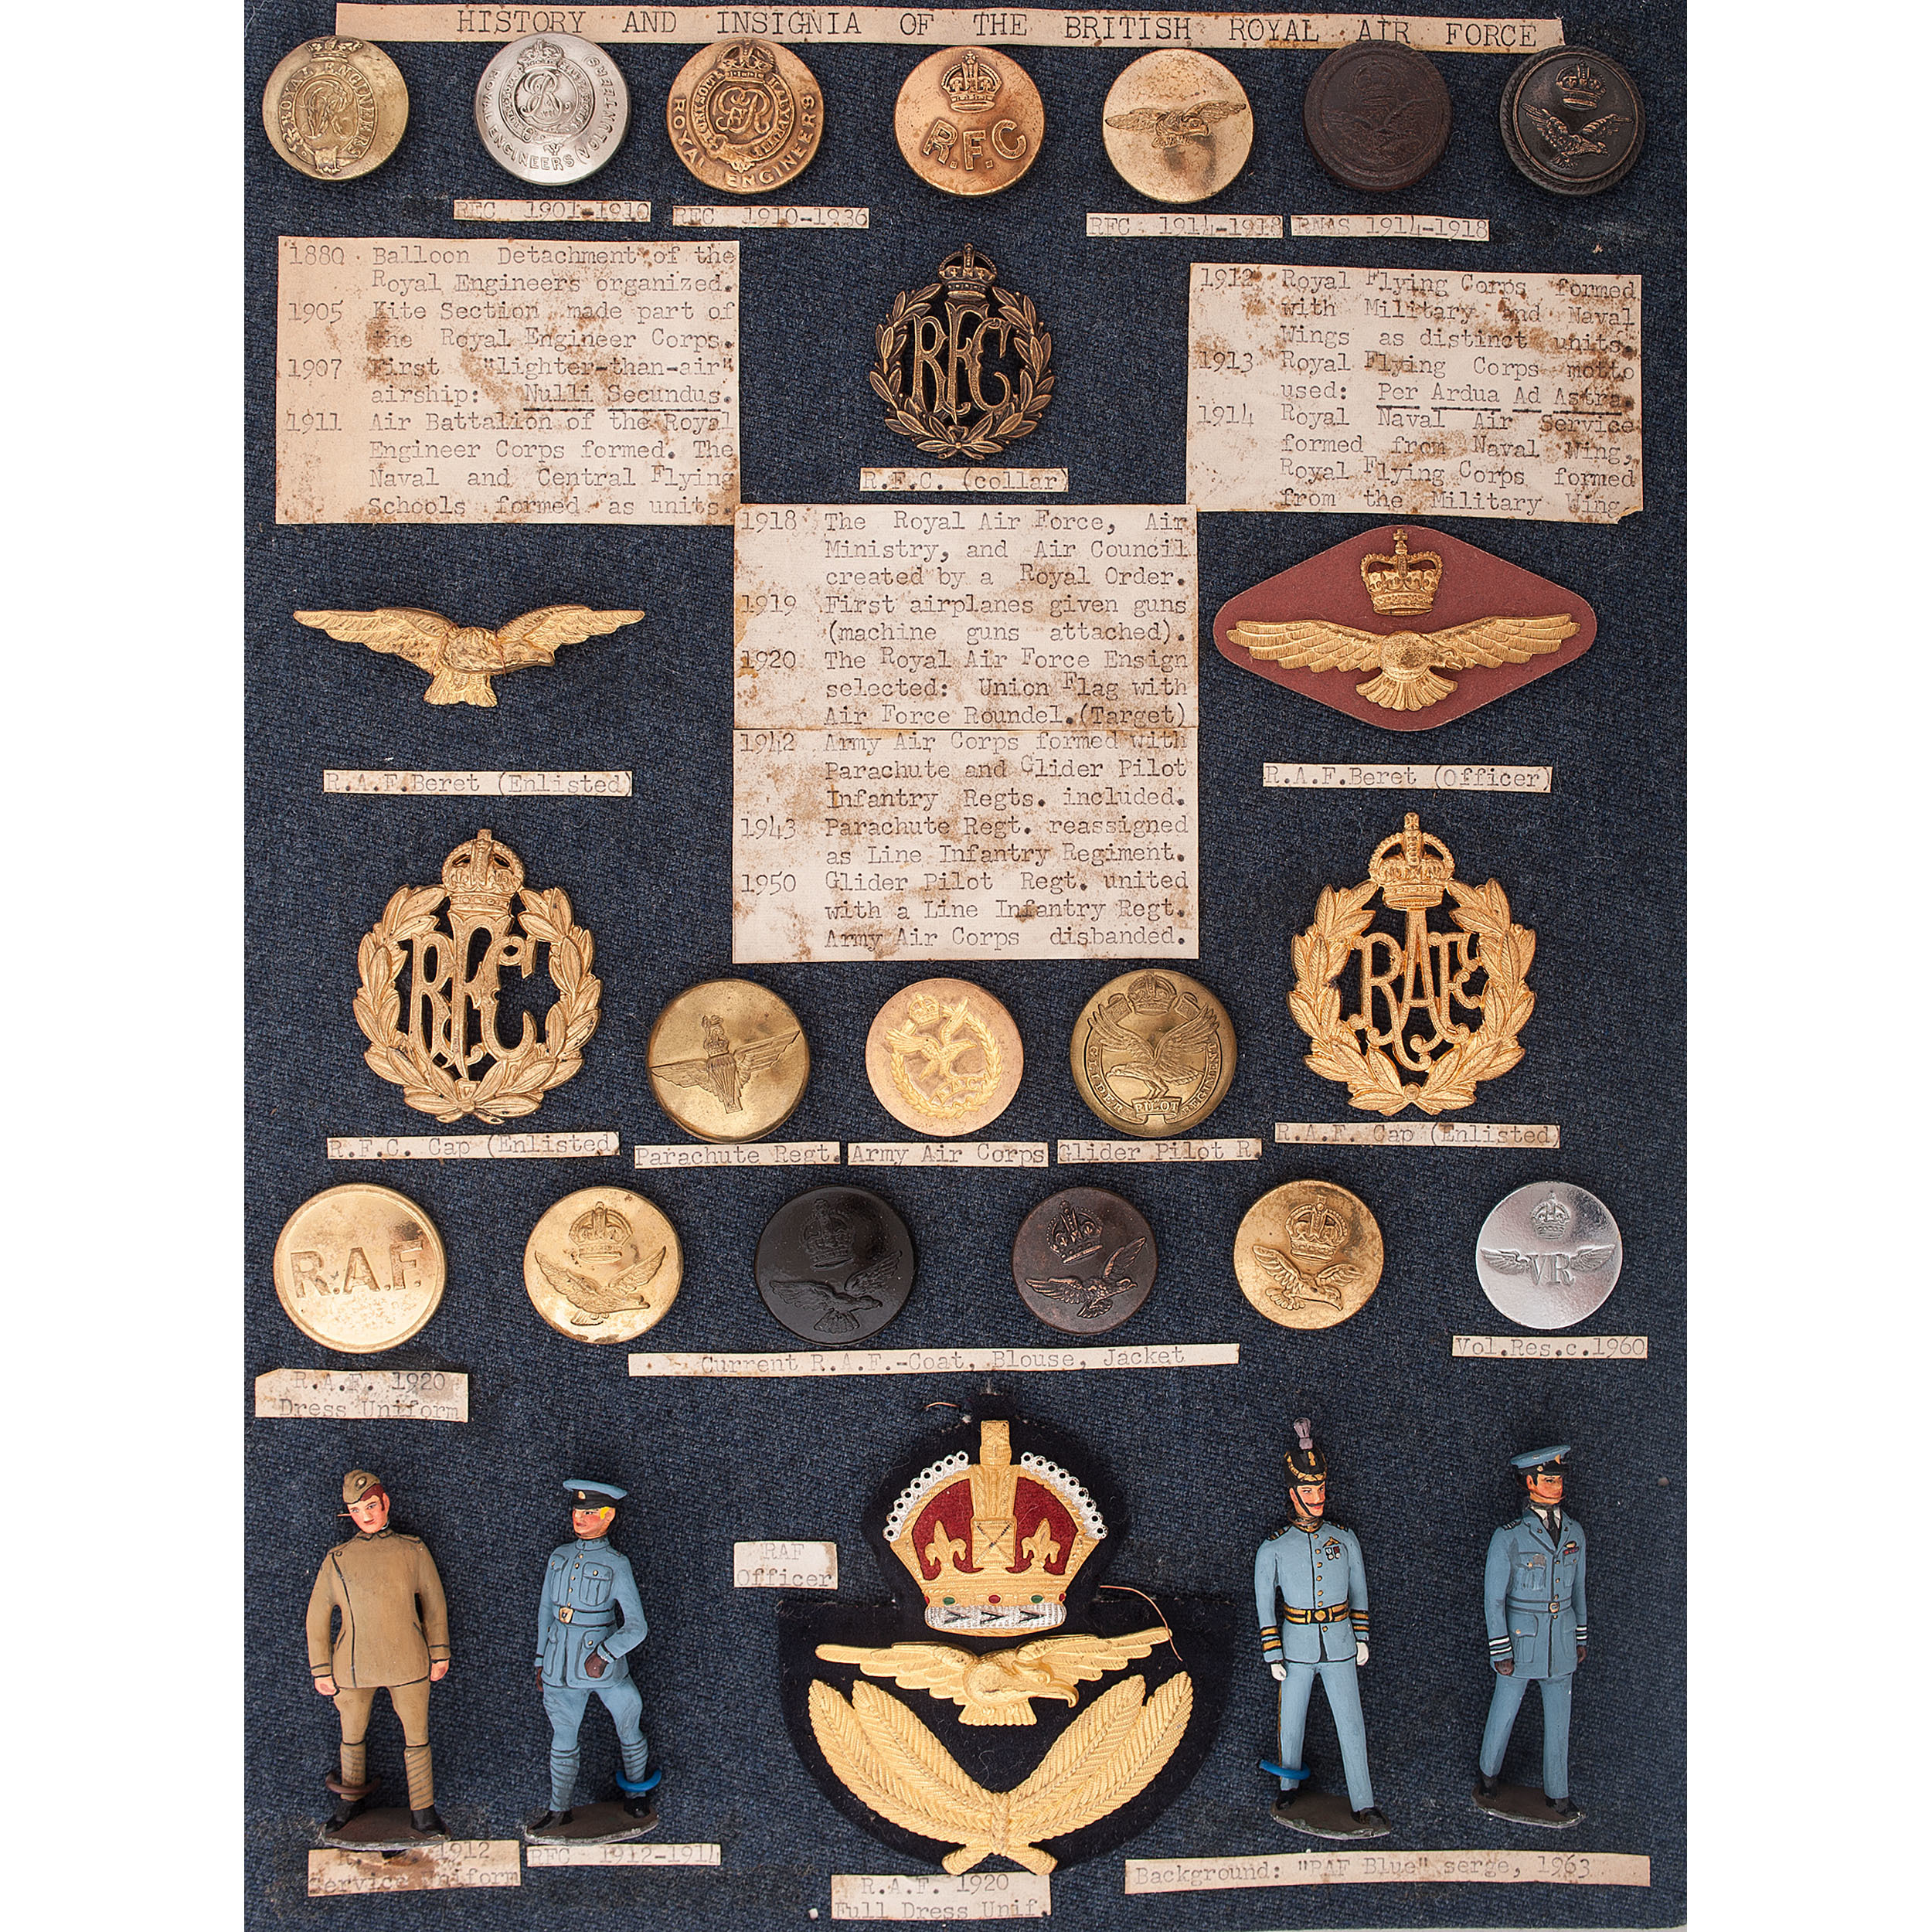 British Royal Air Force Insignia, Buttons, and More | Cowan's